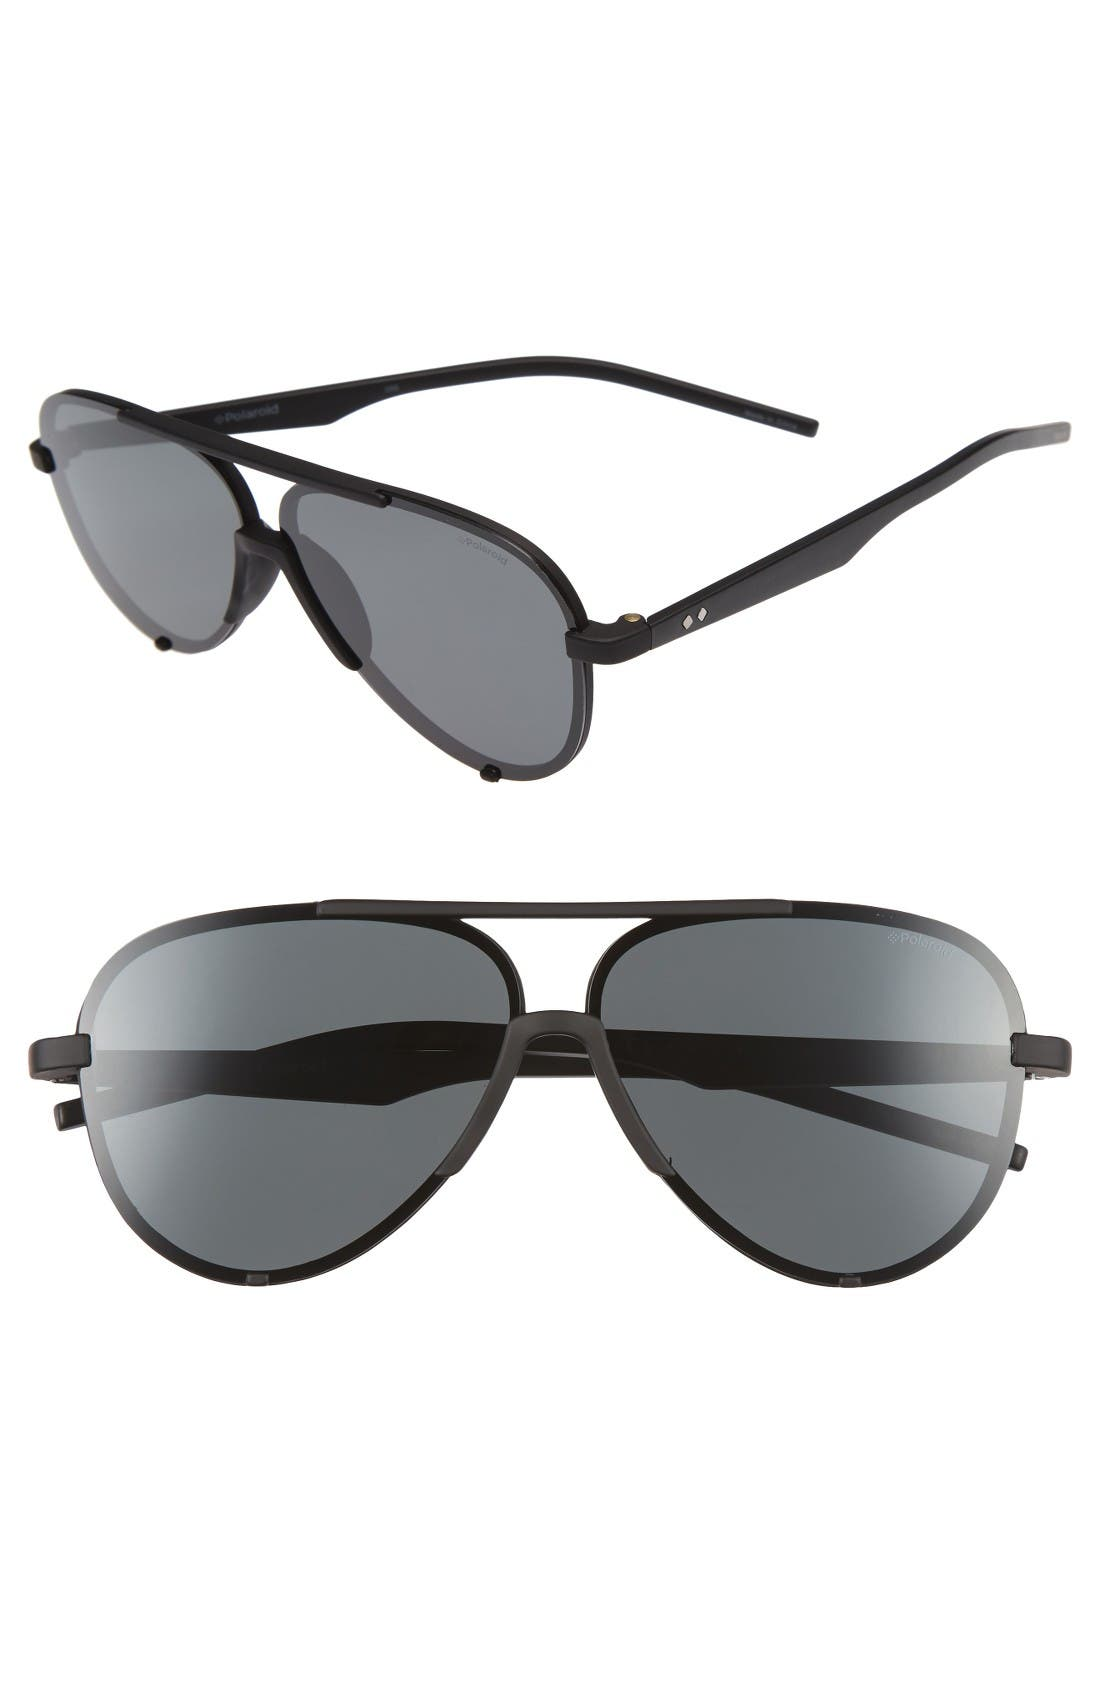 Polaroid 60mm Polarized Aviator Sunglasses